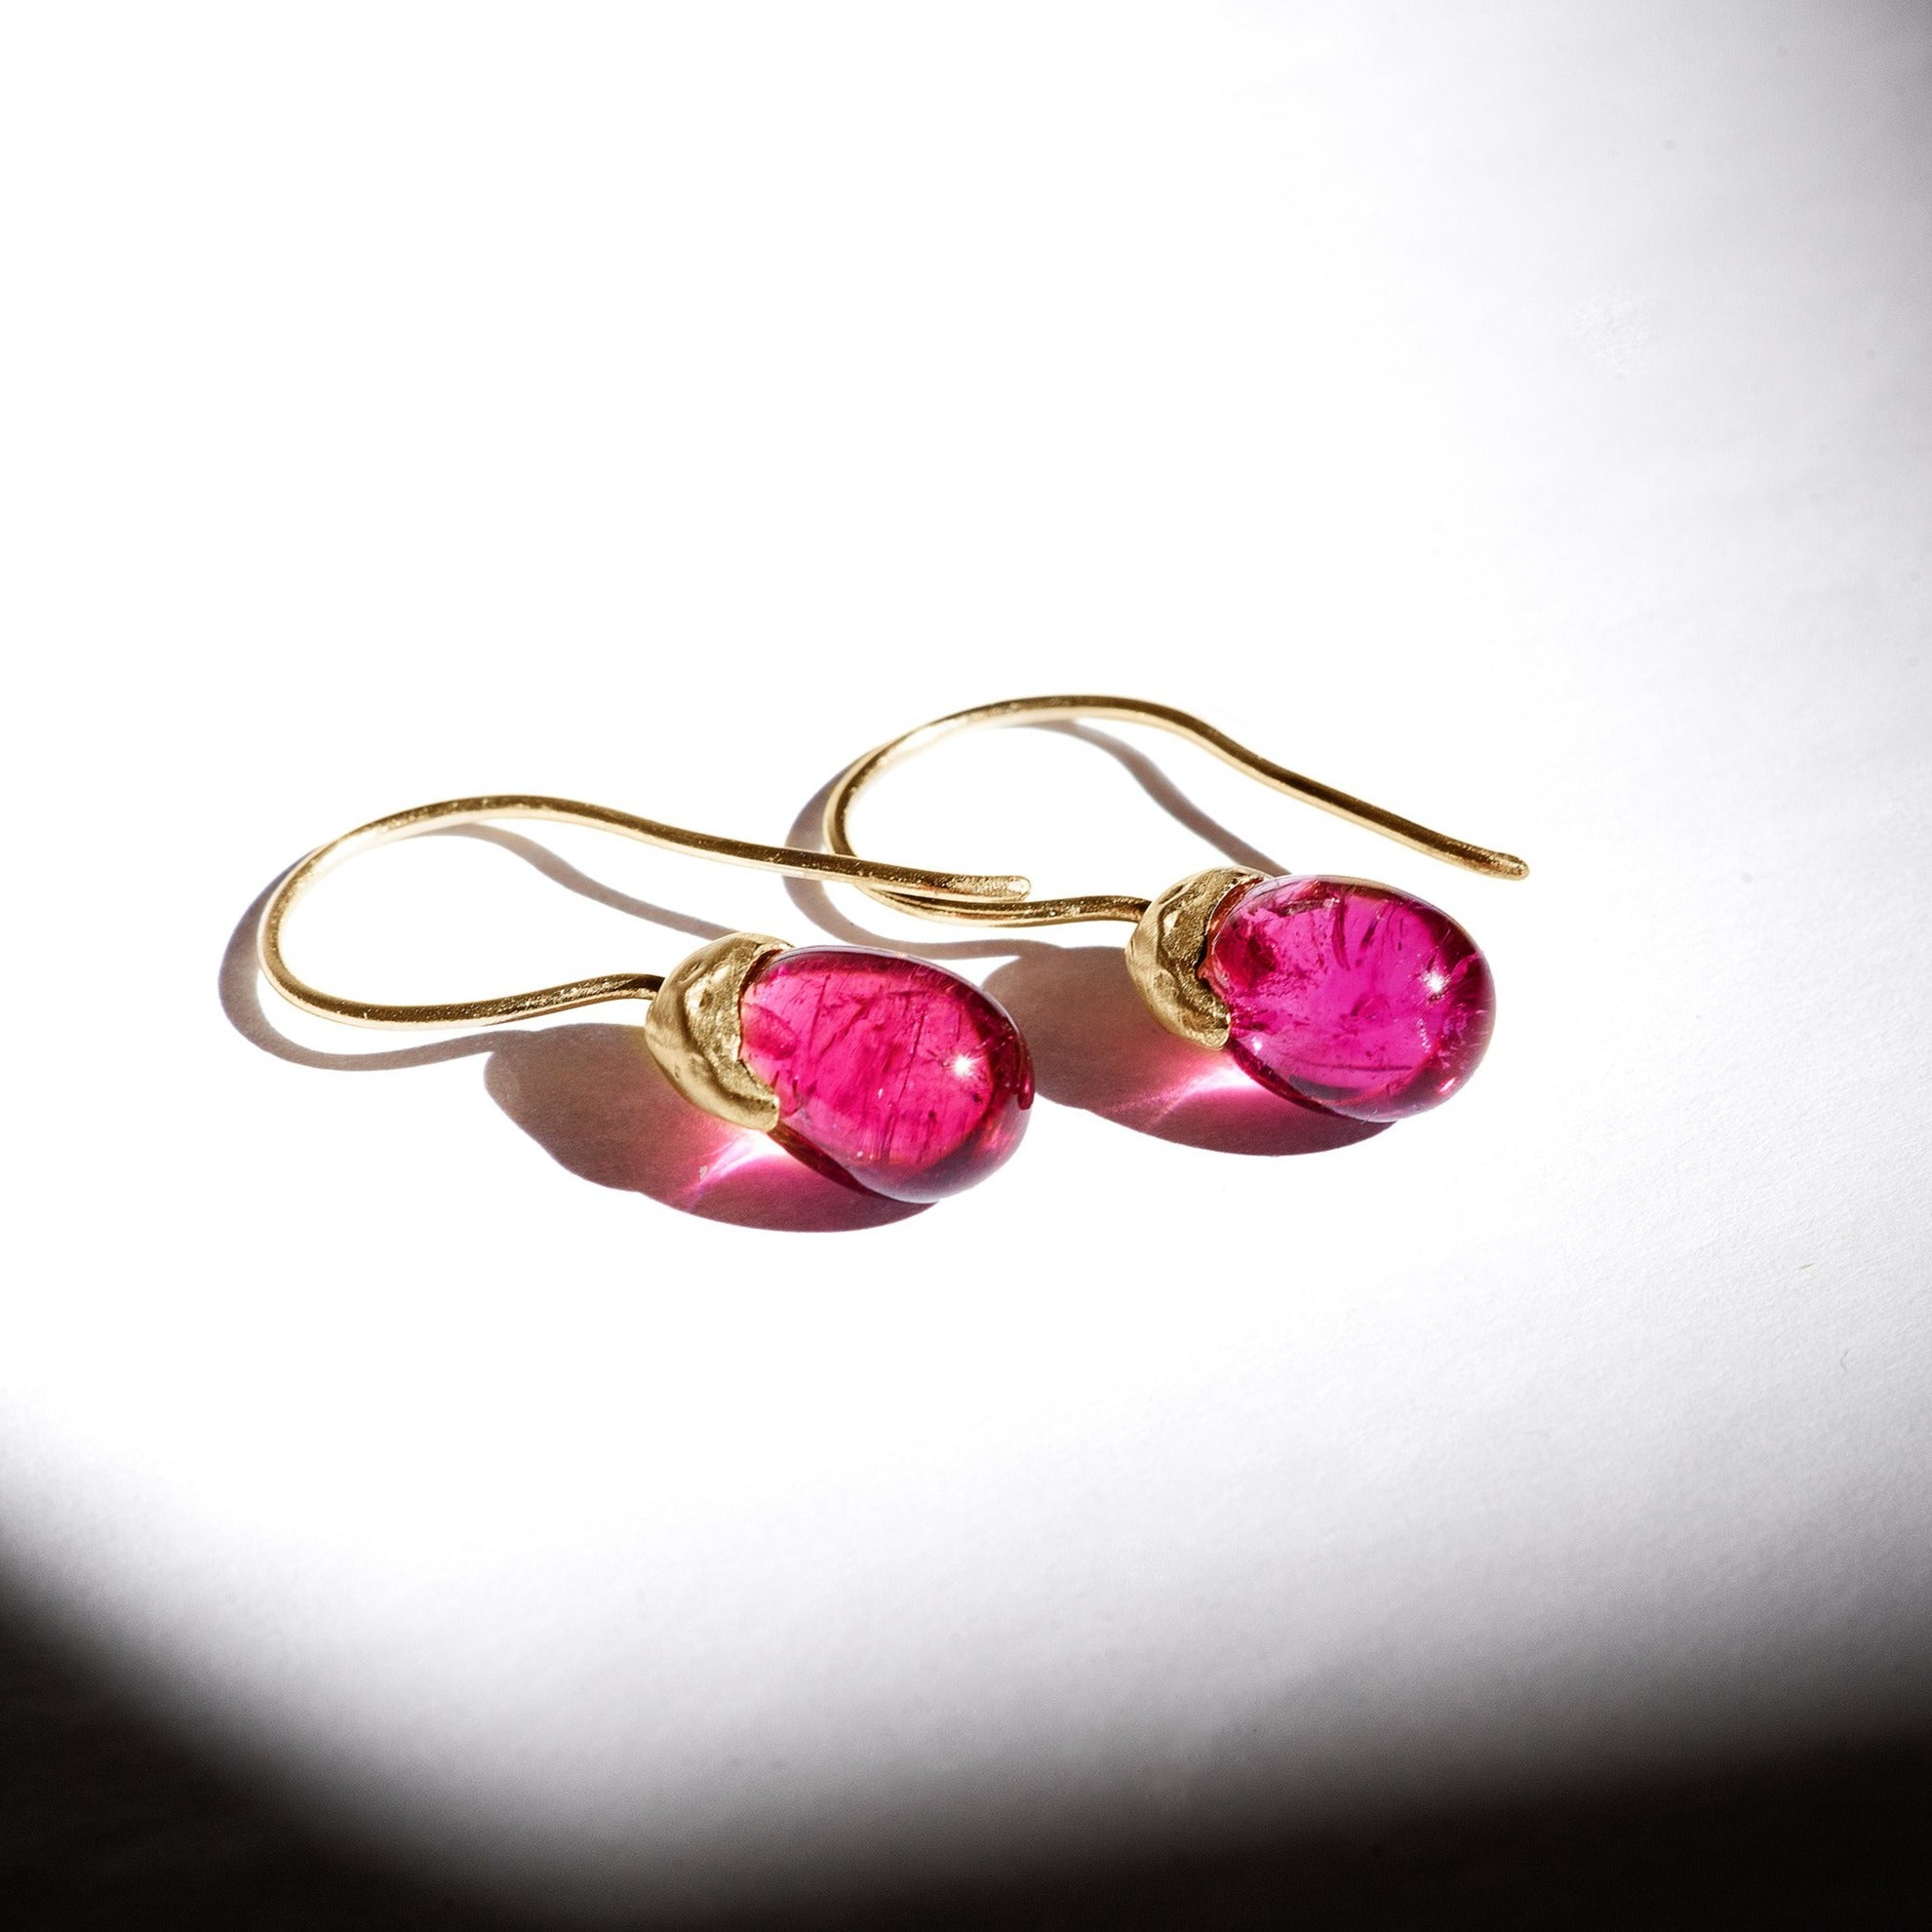 rubellite tourmaline gemstone drops 14kt gold organic earrings